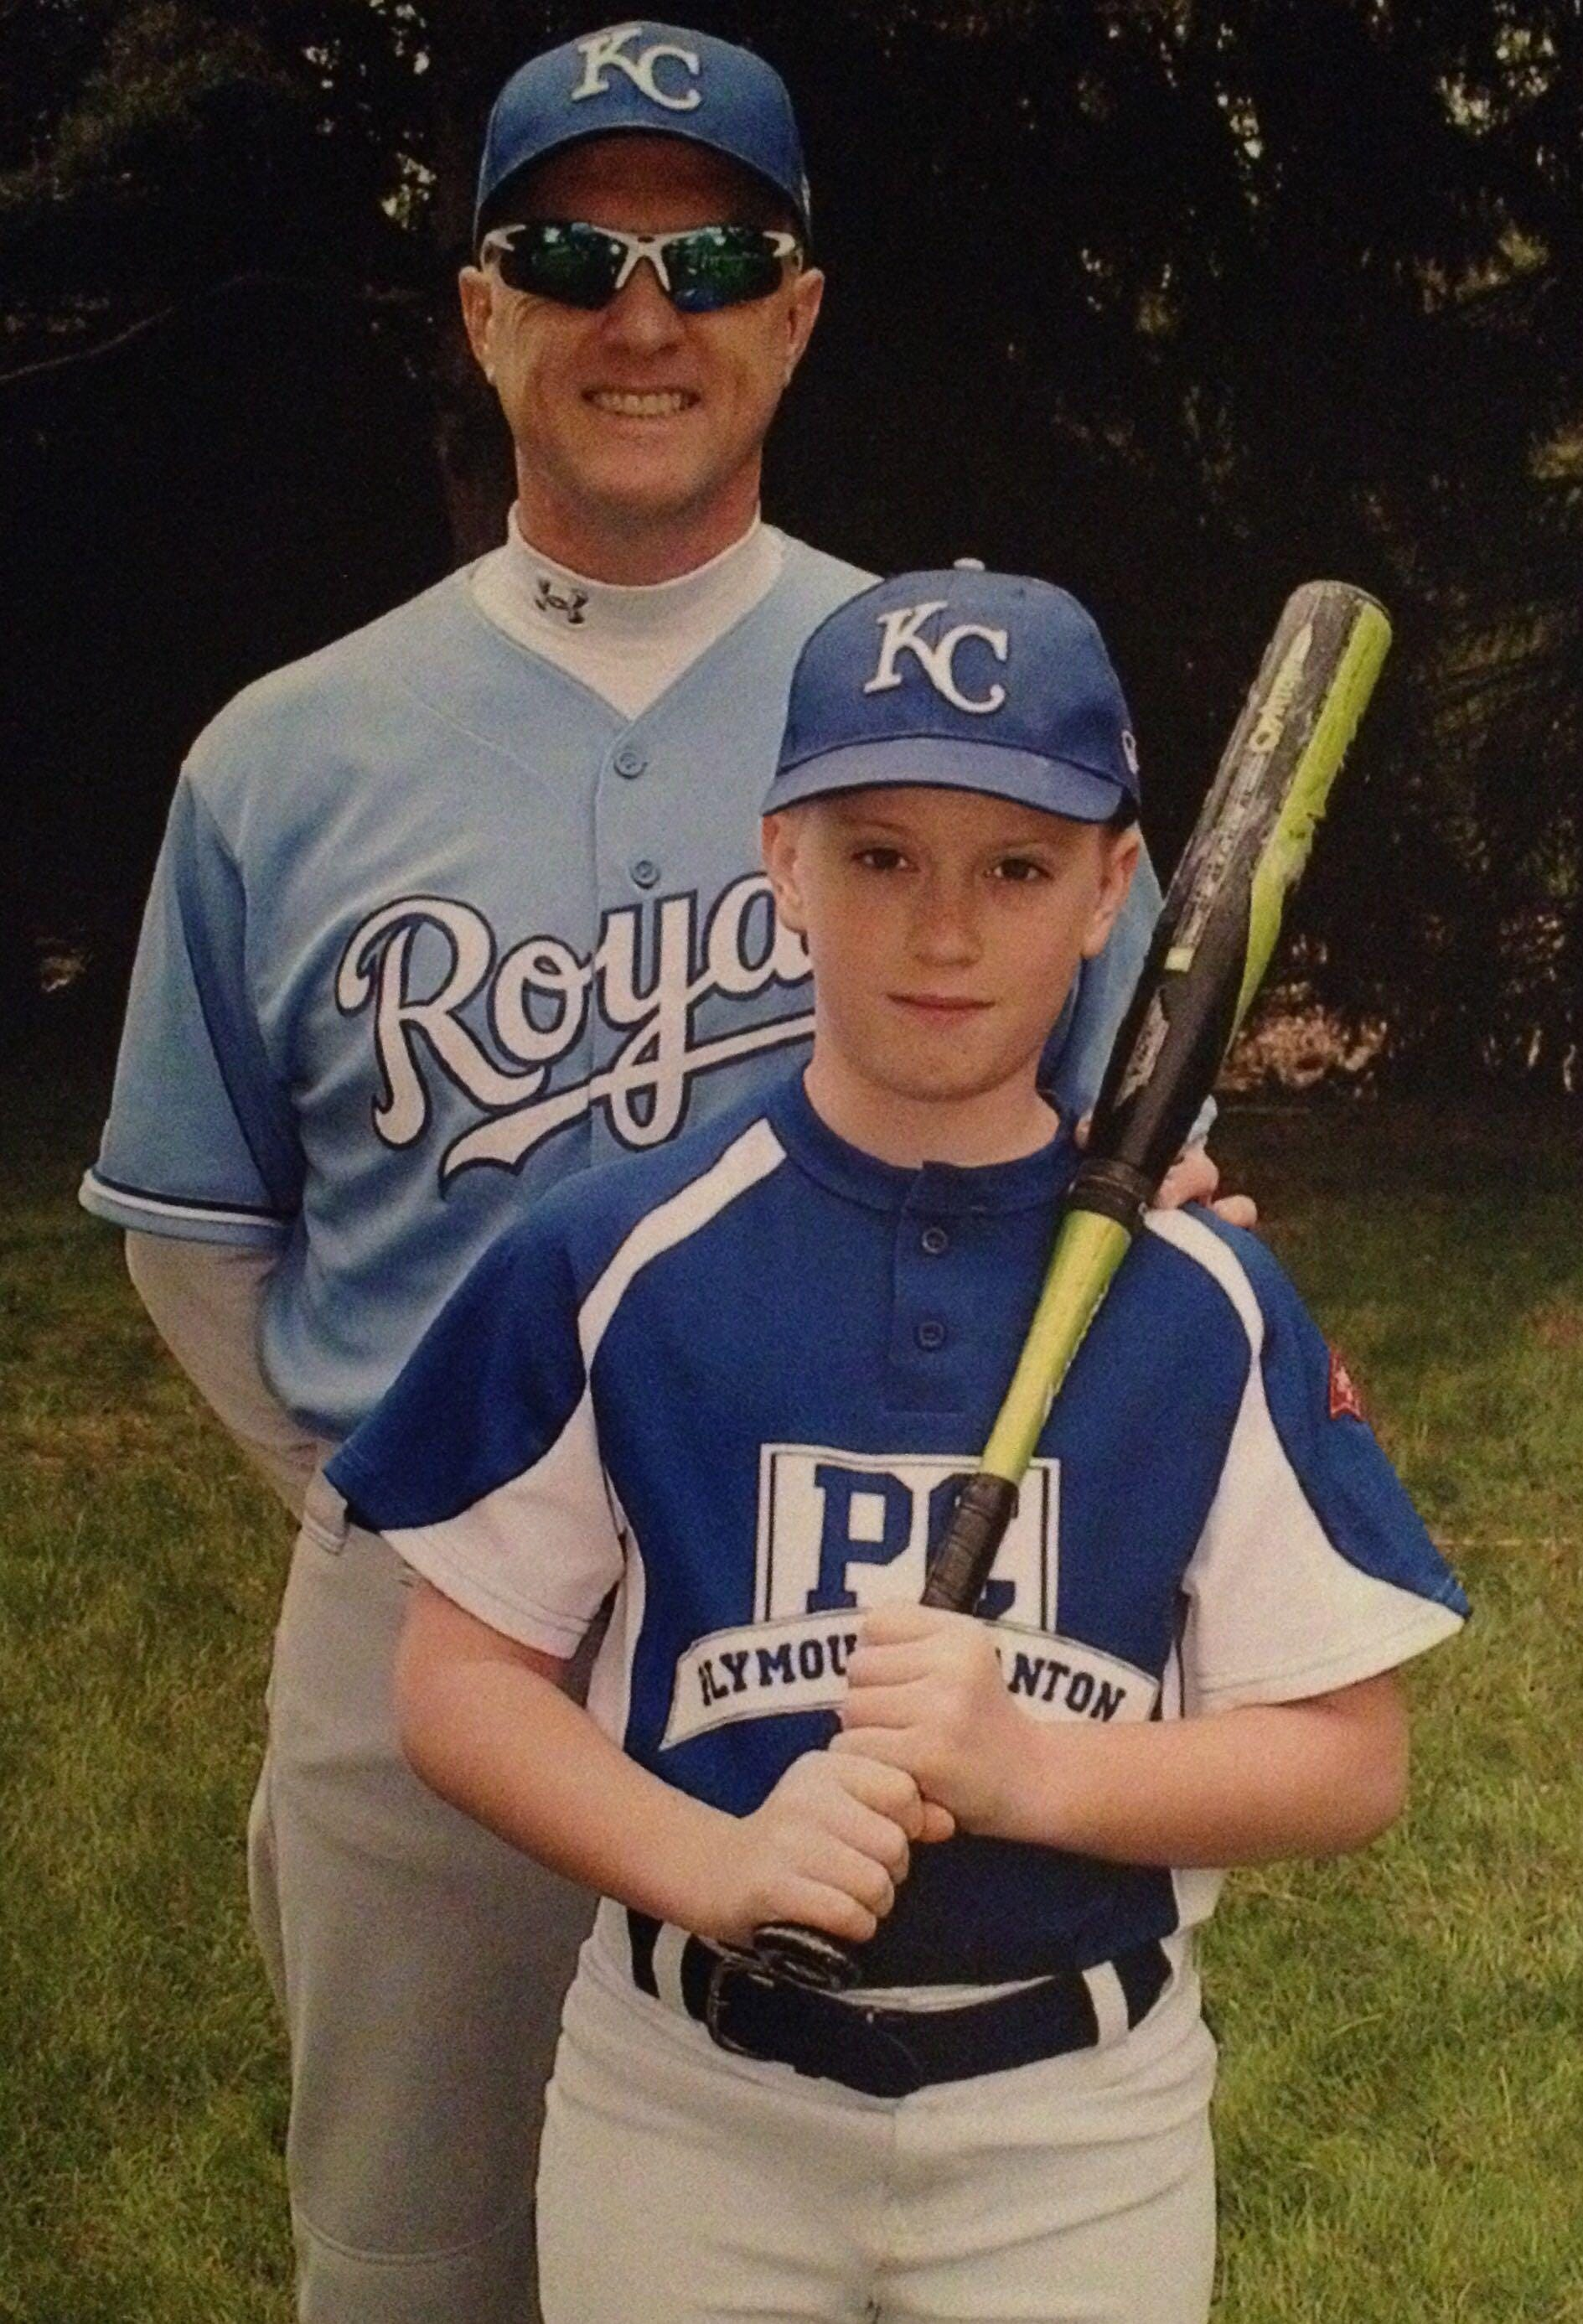 new pcll president wants more kids playing baseball